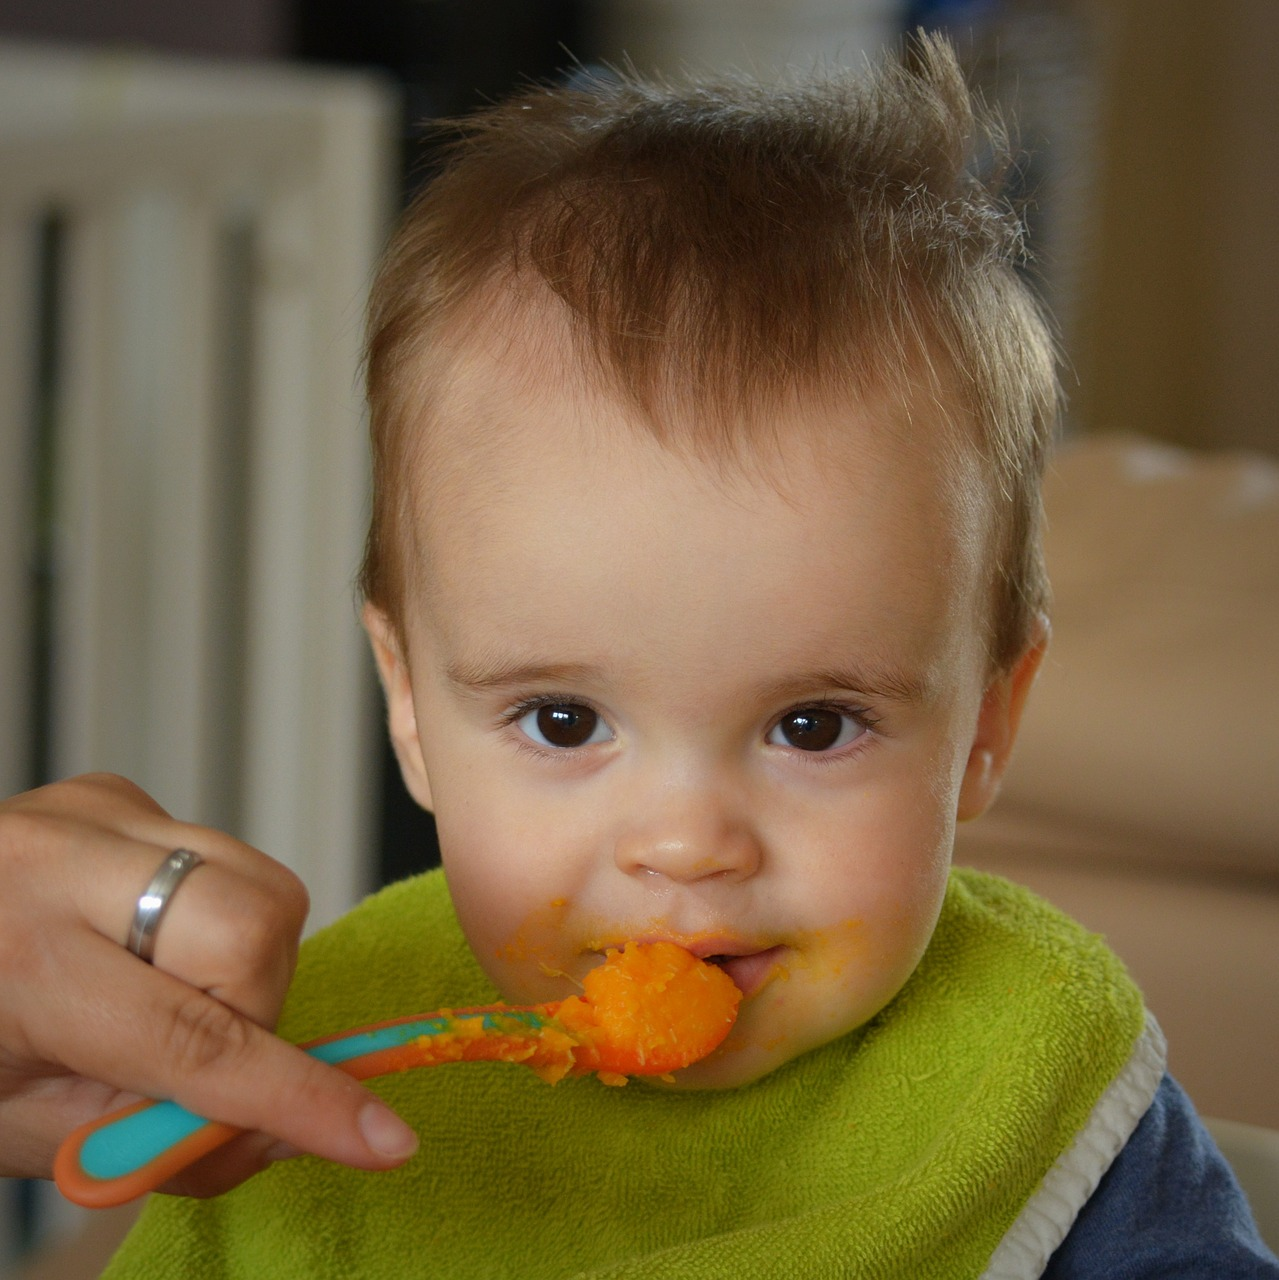 How to Make Baby Food: DIY Style